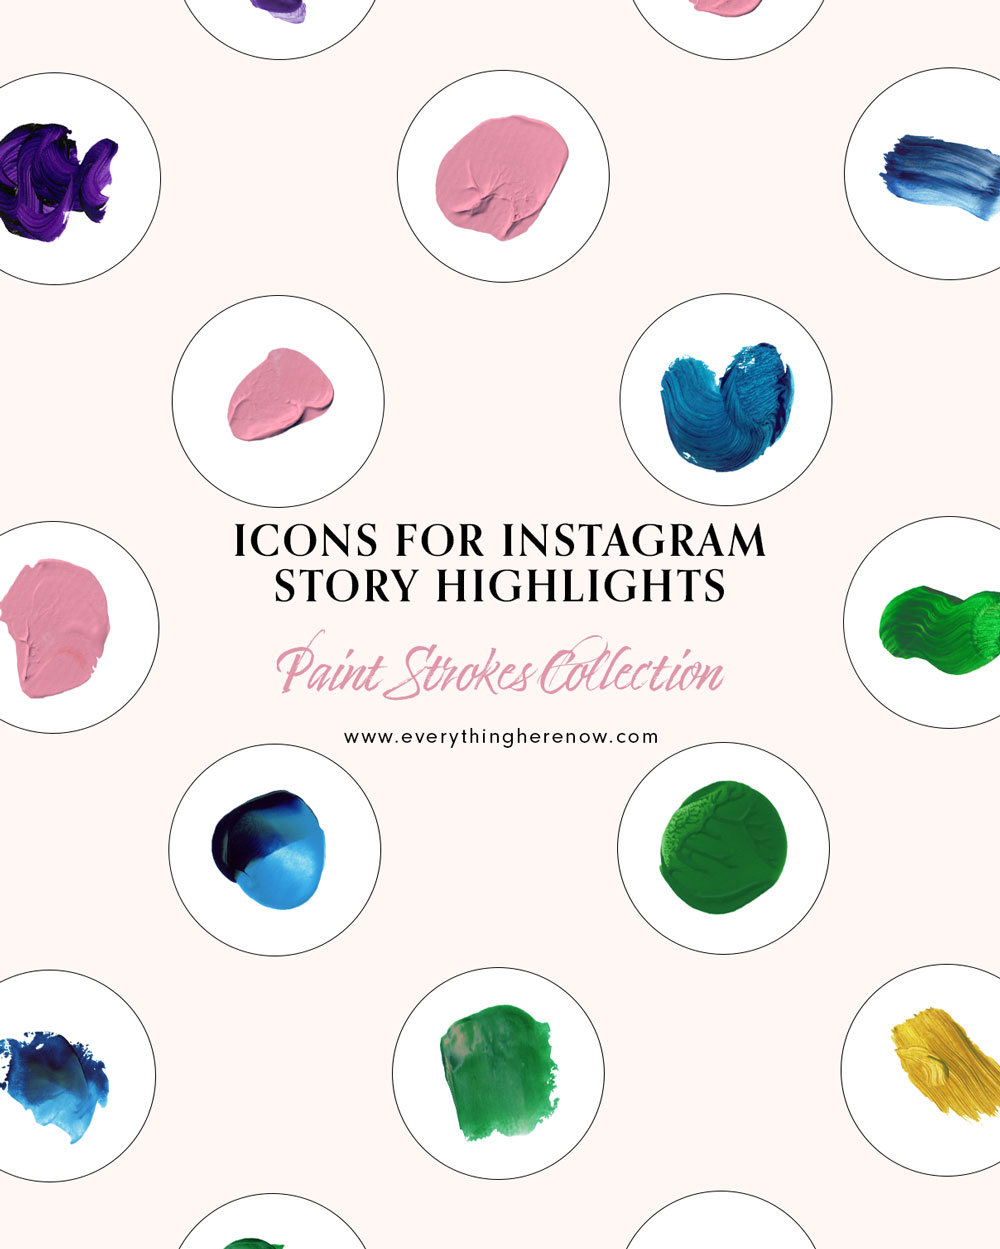 Icons for Instagram Story Highlights: Desert Heat Collection #instagram #instagramhighlights #icons Icons for Instagram Story Highlights: Paint Strokes Collection #instagram #instagramhighlights #icons https://everythingherenow.com/shop/